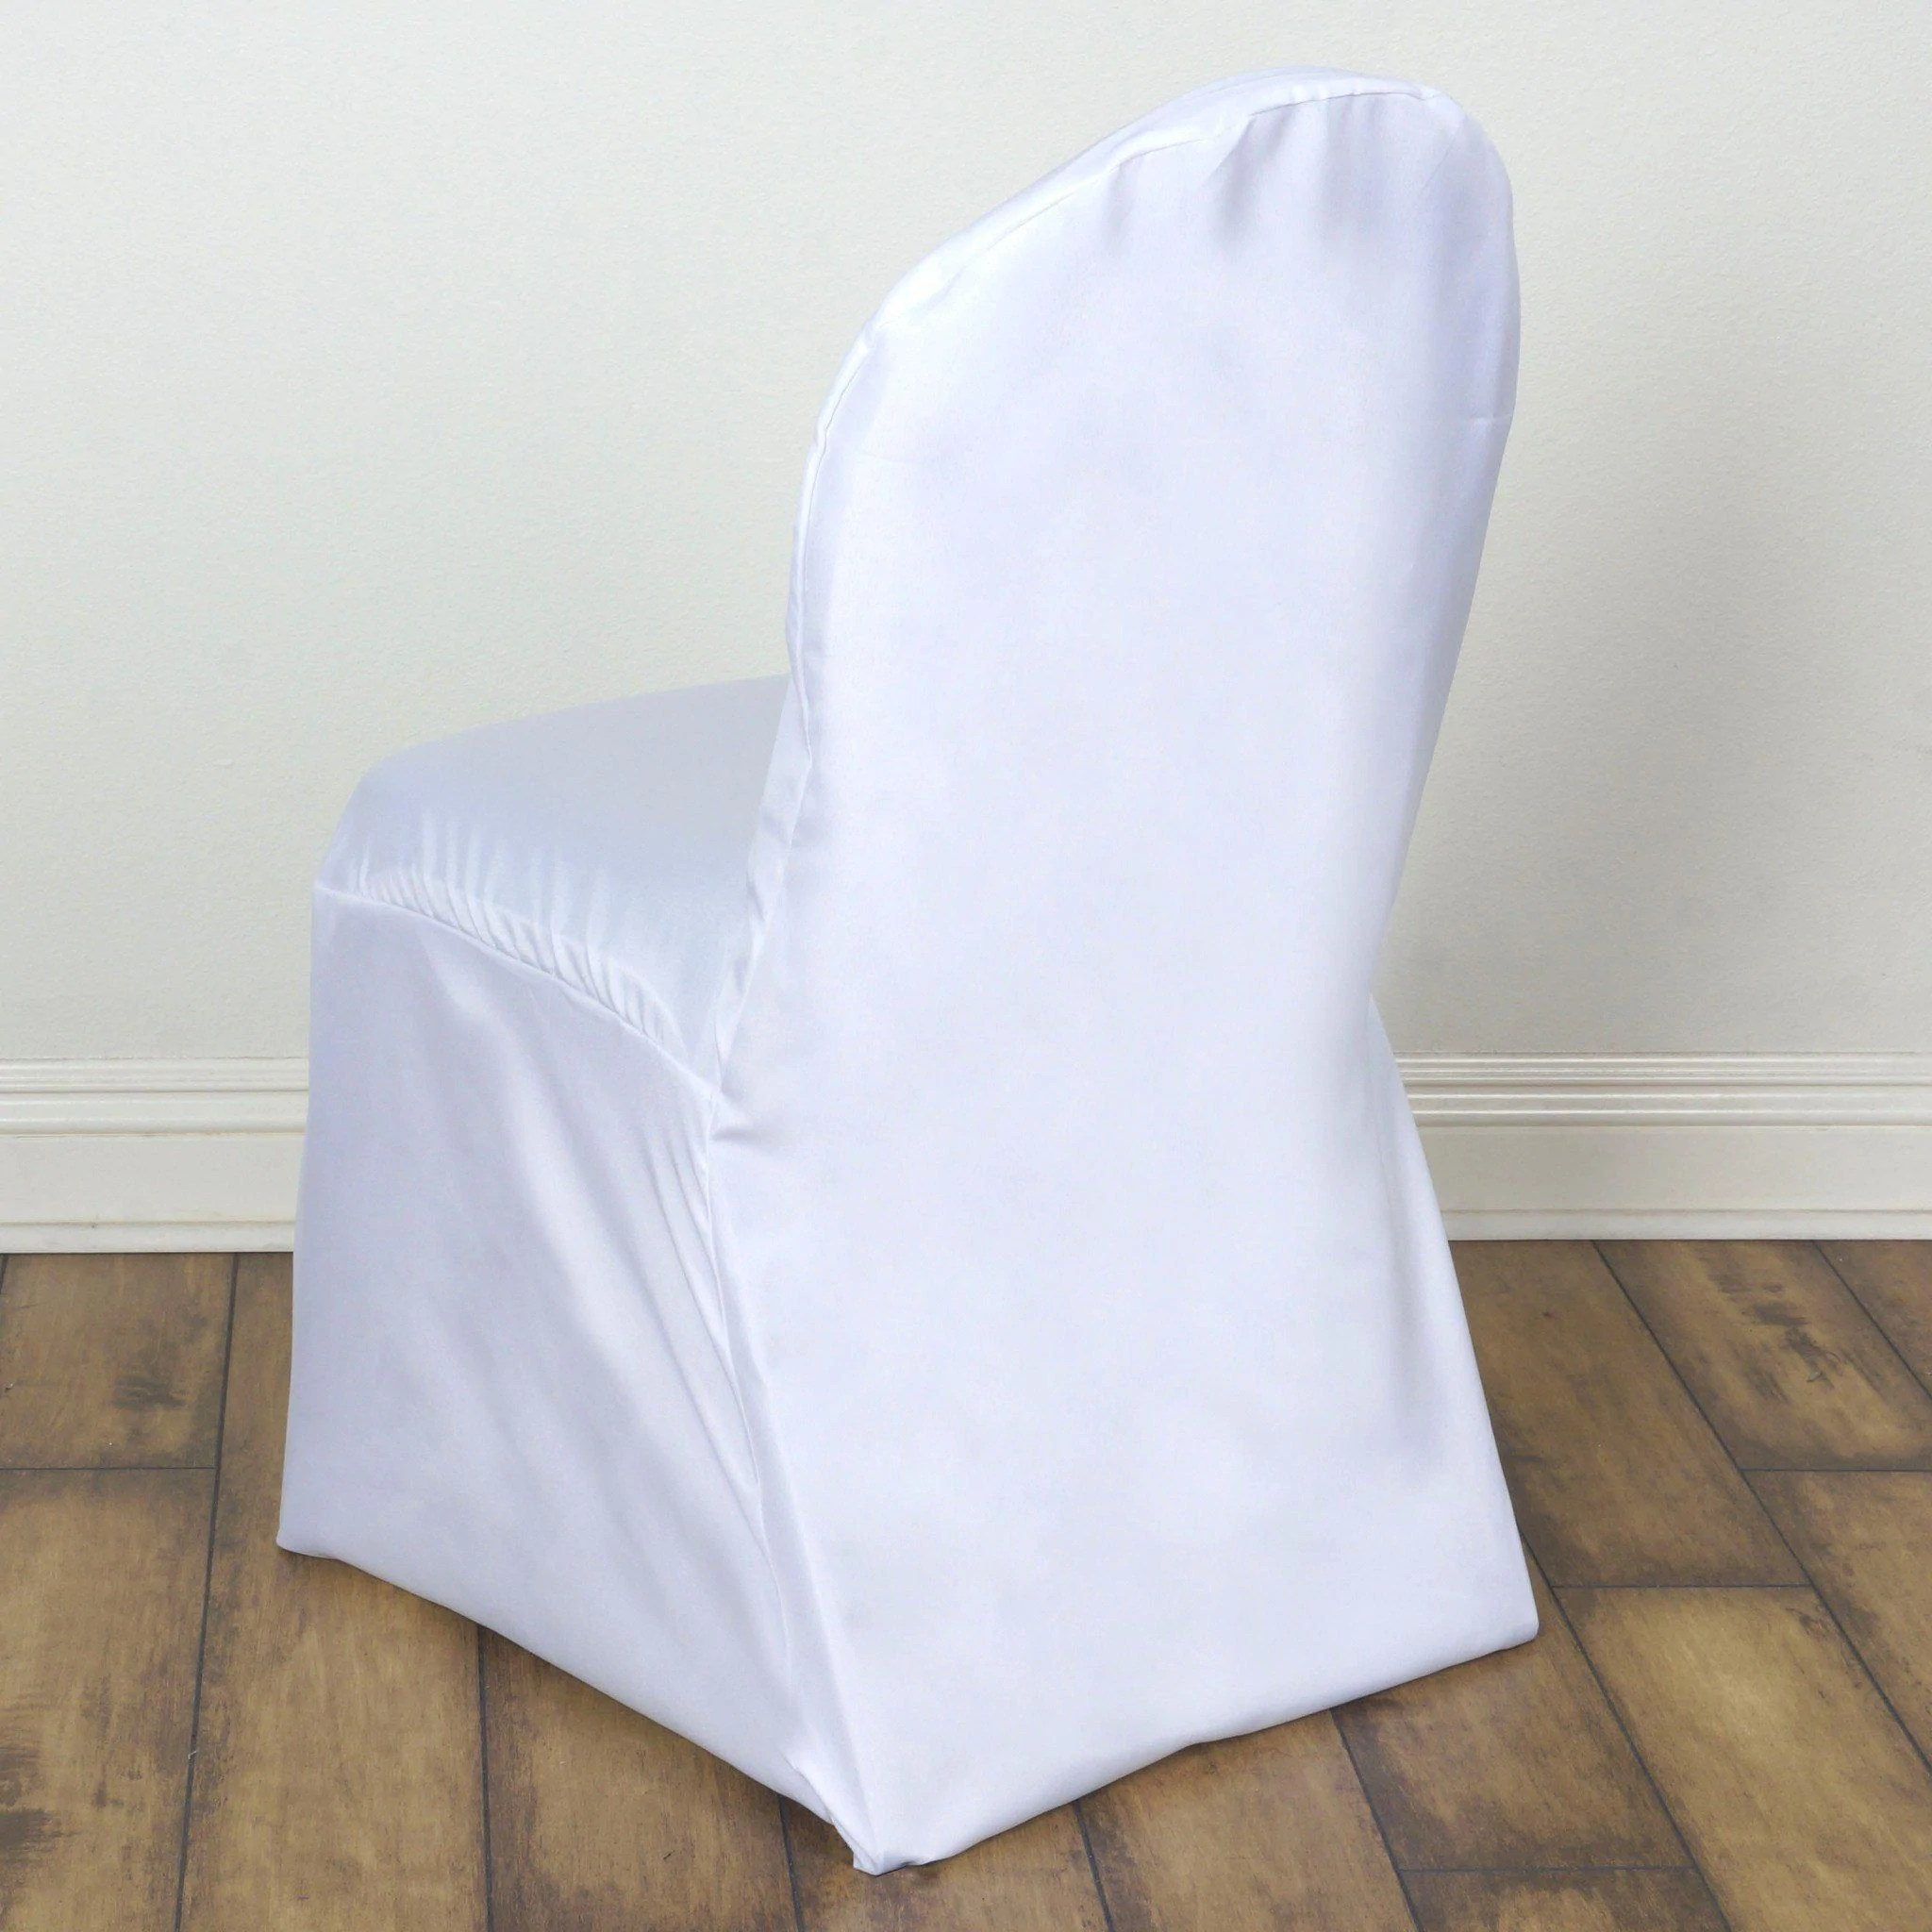 chair covers wedding buy lazy boy lift chairs banquet white tablecloths factory